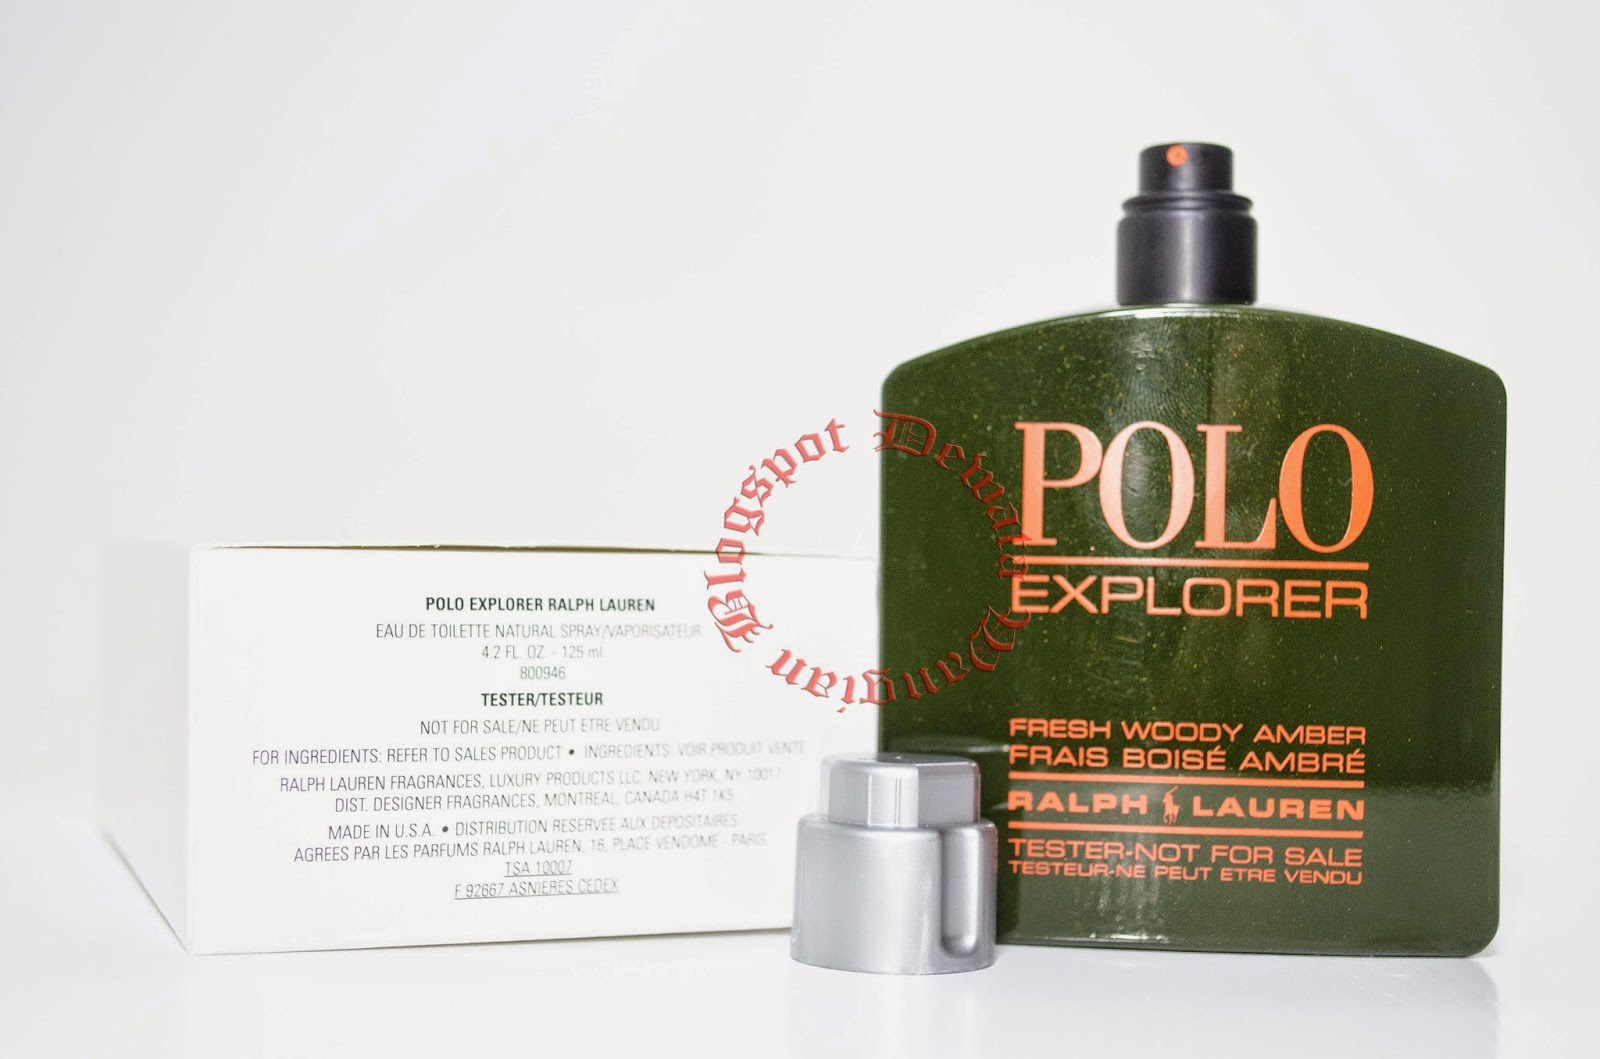 382d4d094a Polo Explorer is a fresh woody amber scent launched in 2007 by Ralph Lauren.  Top notes are mandarin orange and bergamot. Middle notes are coriander and  ...